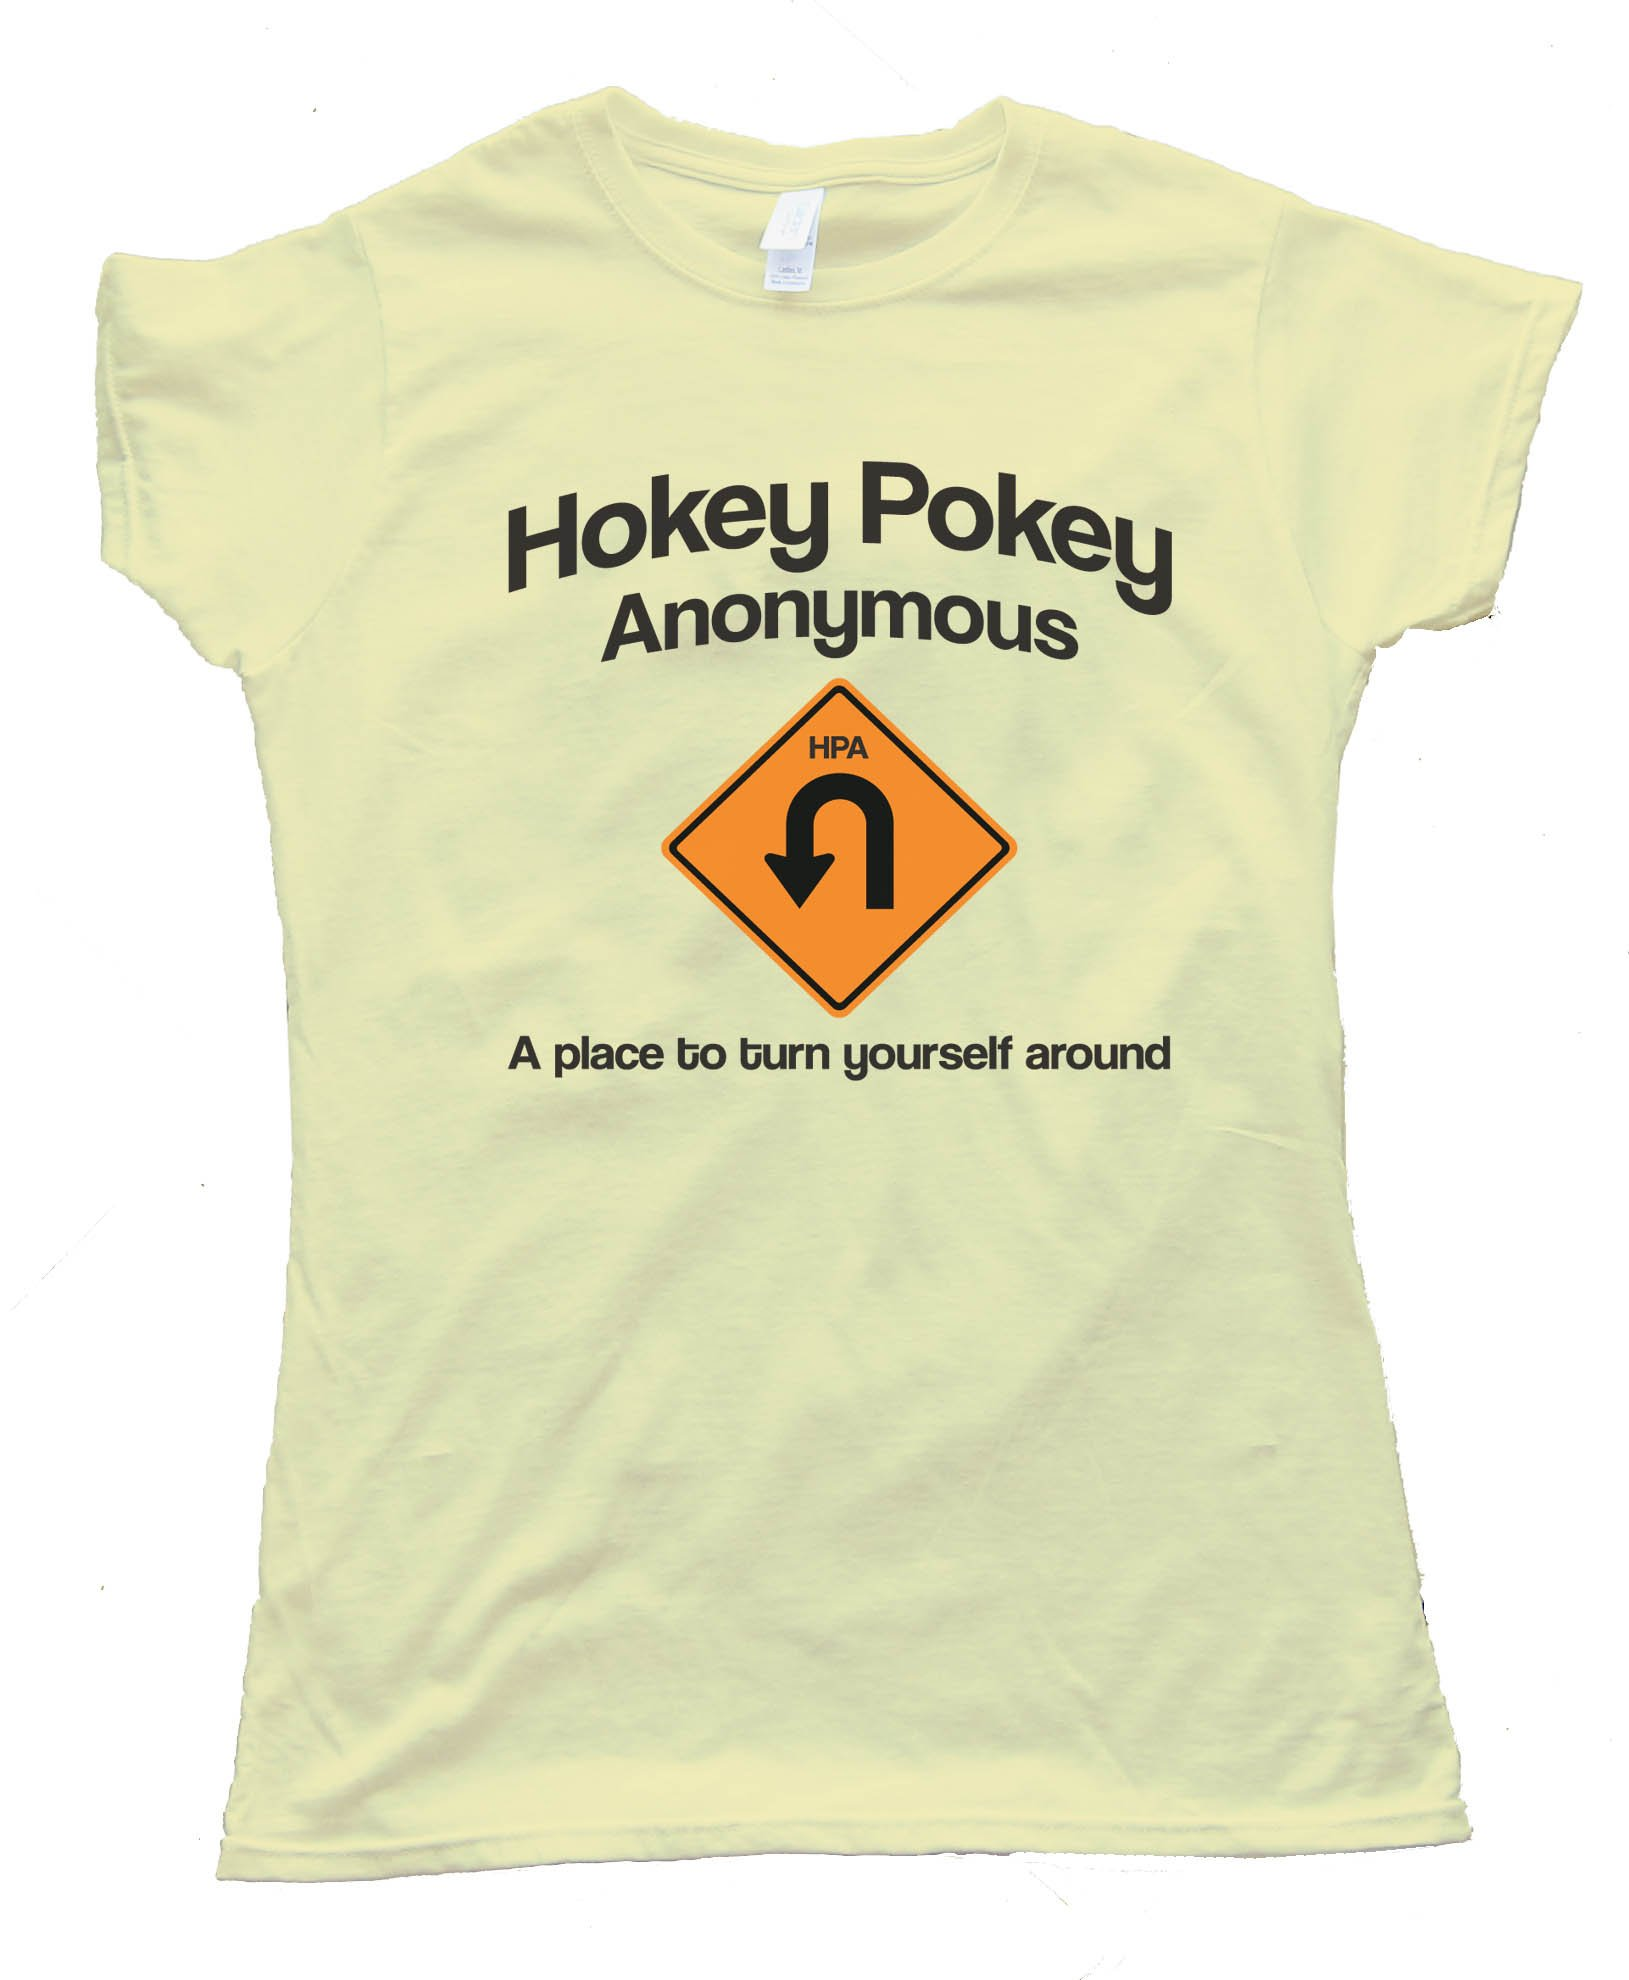 Hokey Pokey Anonymous - A Place To Turn Yourself Around - Tee Shirt